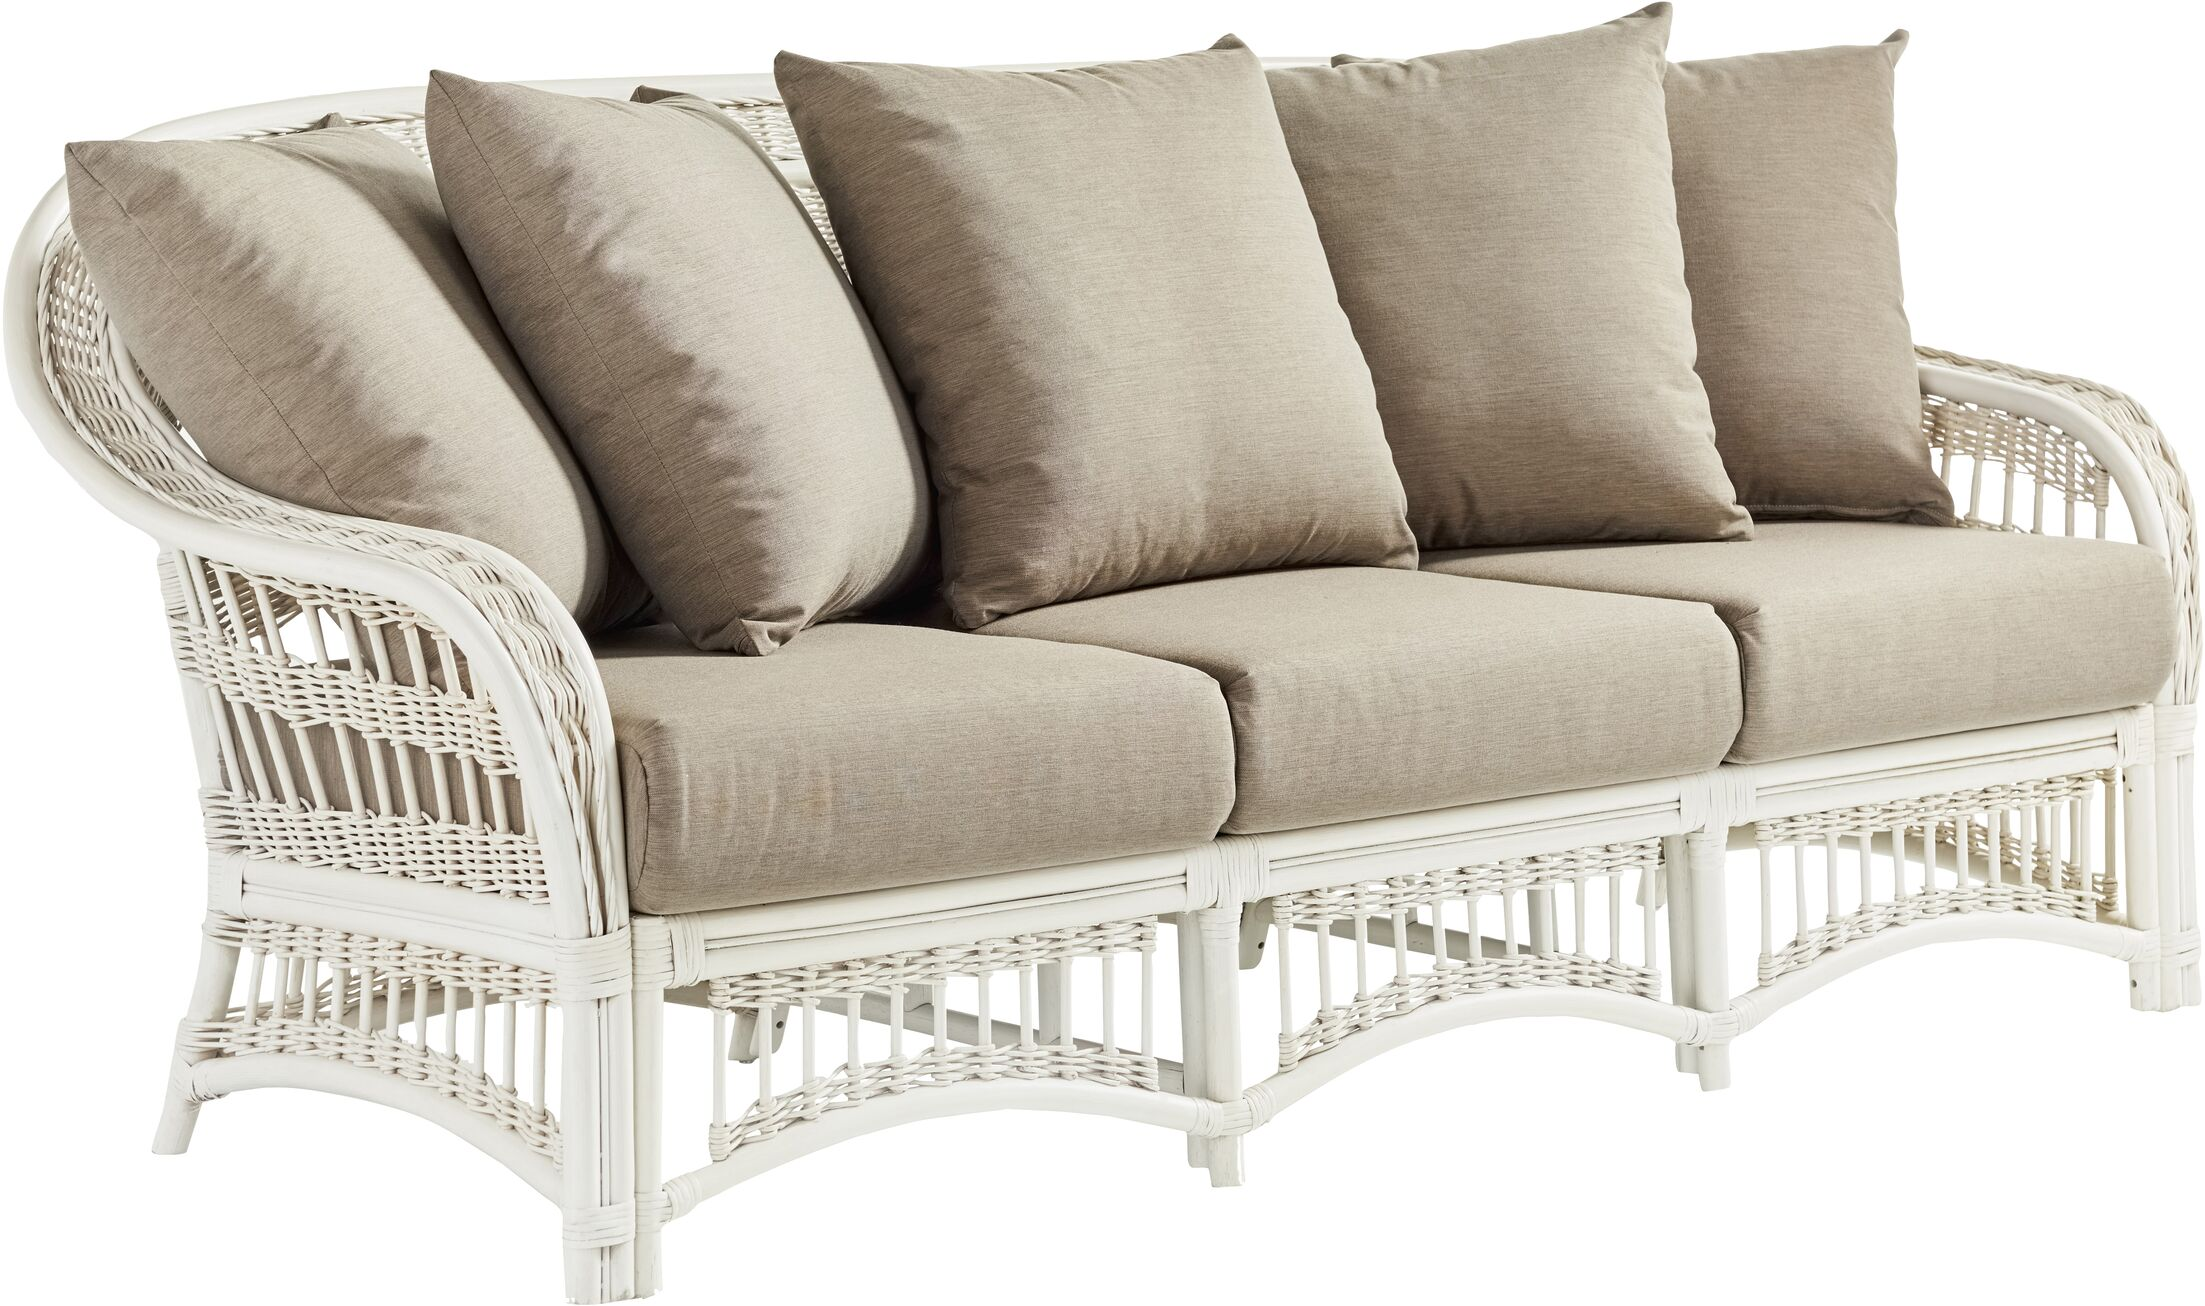 Staats Sofa with Cushions Frame Color: Whitewash, Cushion Color: Meeks Shell